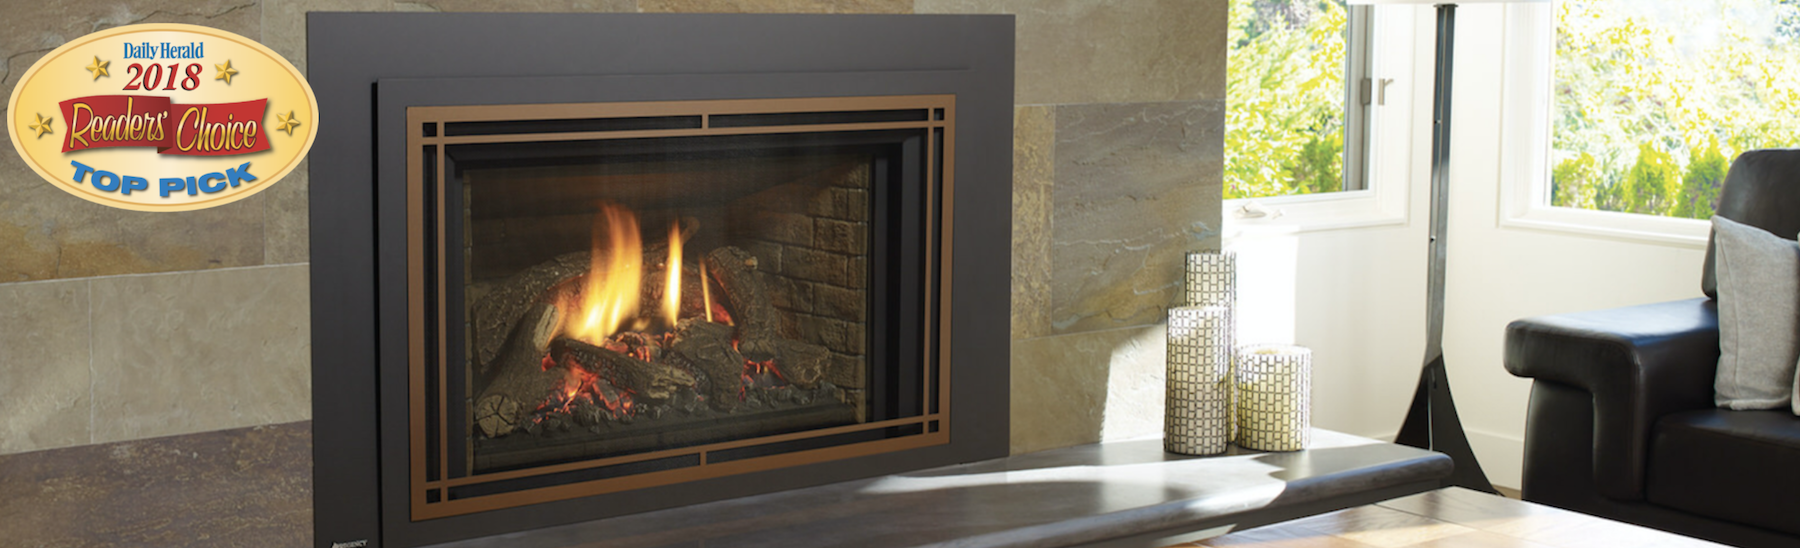 Chicago Fireplace U0026 Patio Furniture Store Arlington Heights | Grills /  BBQs, Mailboxes U0026 Accessories IL